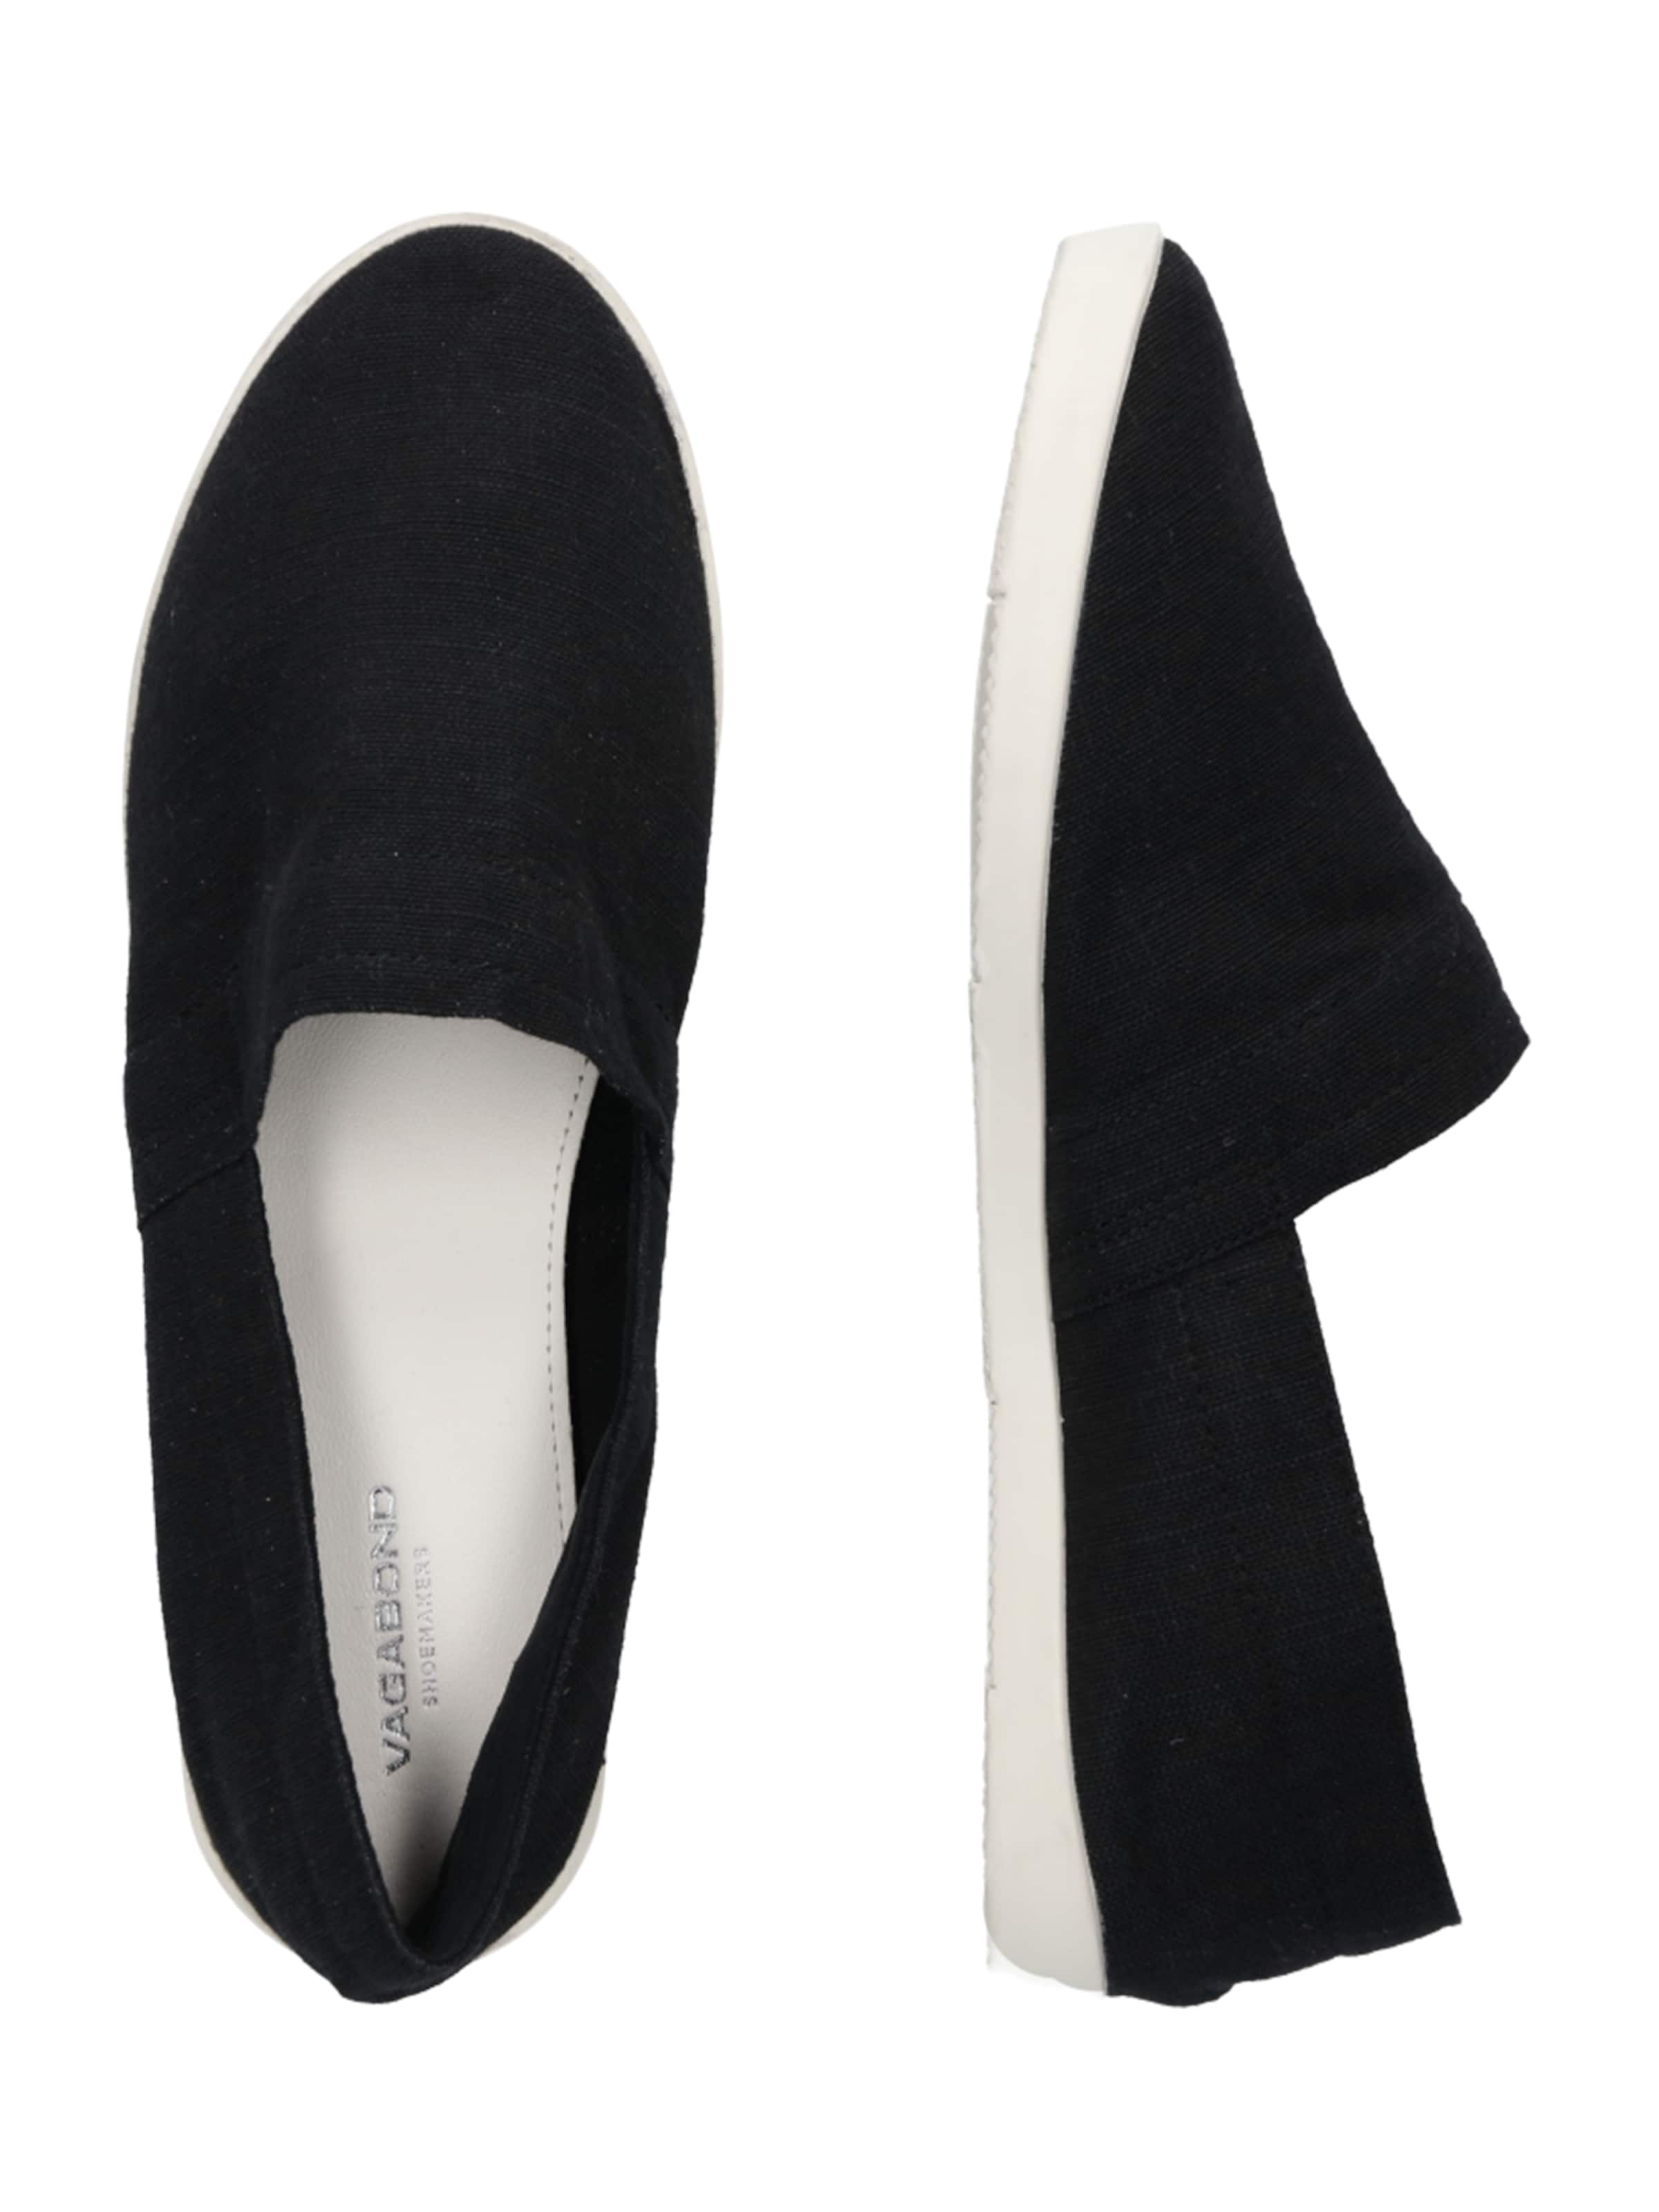 Slipper Shoemakers Schwarz Vagabond In nPNw8OXZ0k